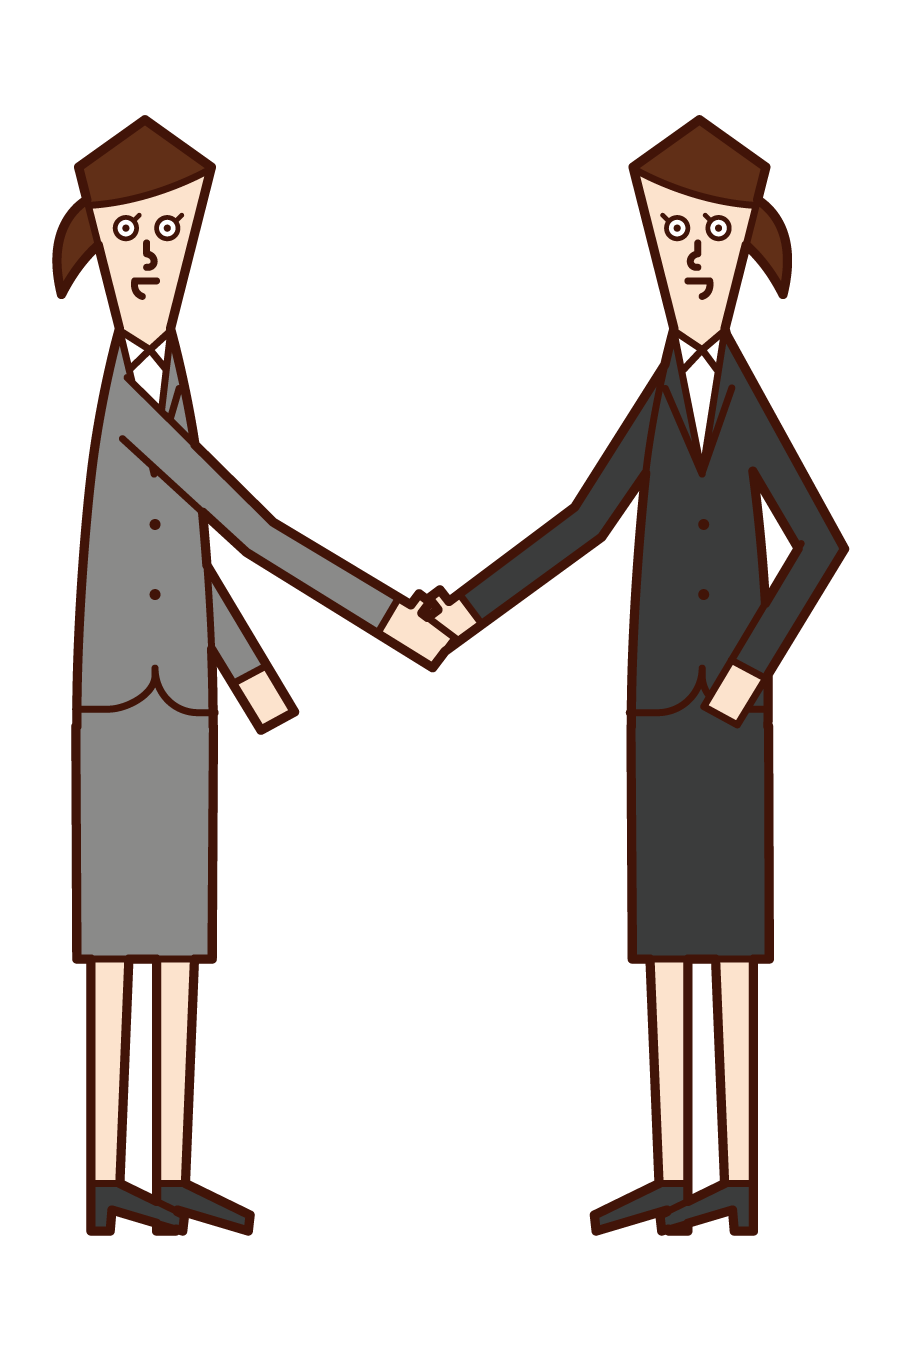 Illustration of a woman shaking hands